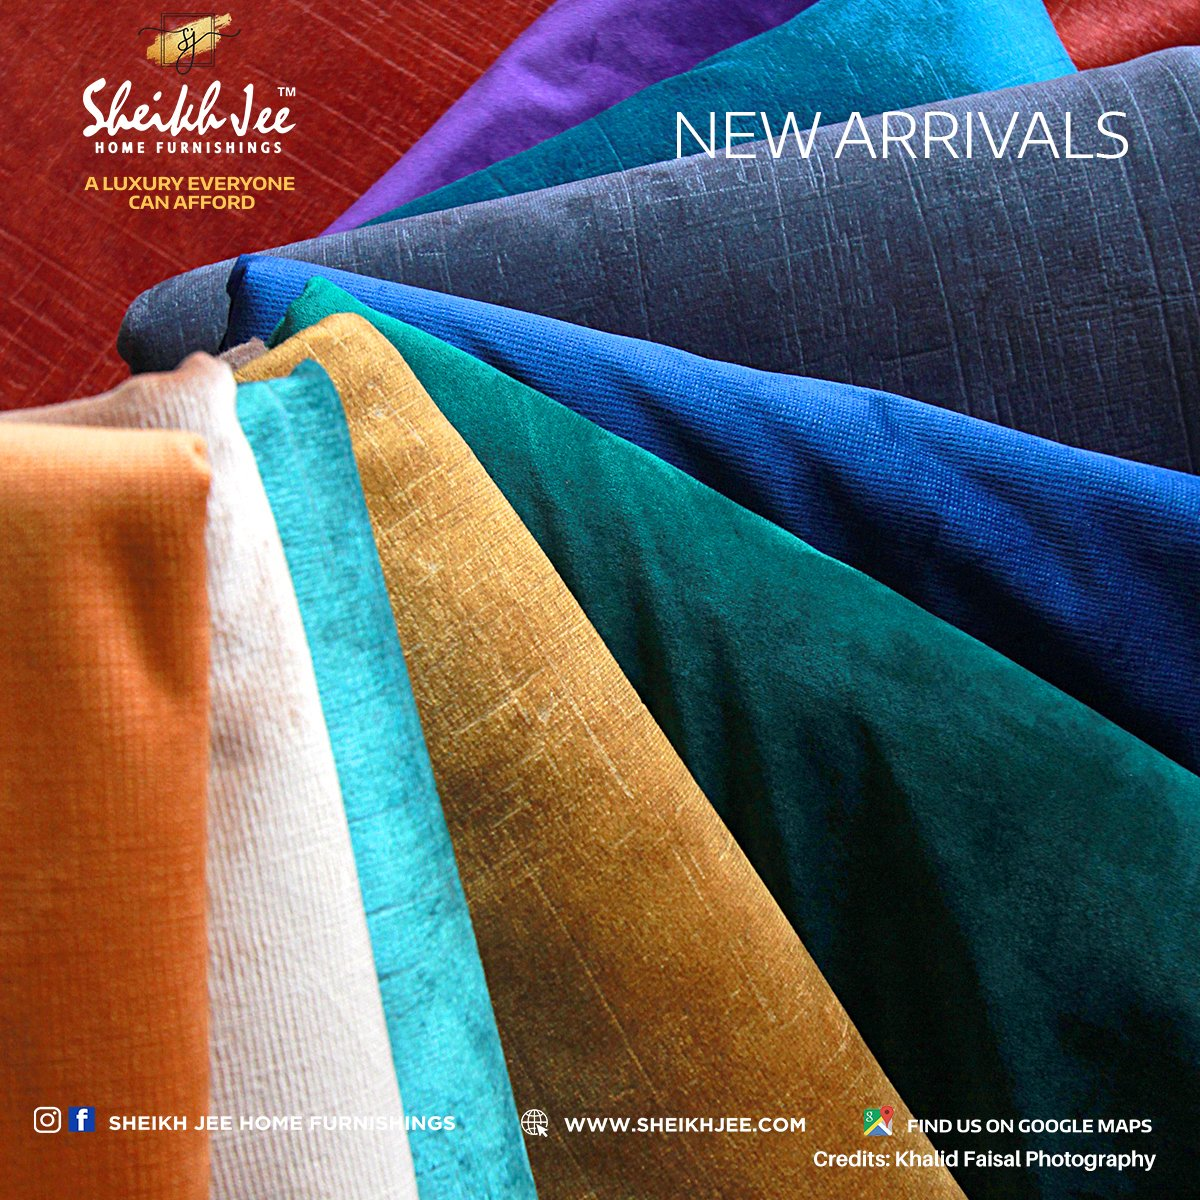 NEW ARRIVALS Adding a hint of vibrant hues to your home furnishings this spring season is always a good idea and finding the trendy shades that work best. Discover more at our showrooms.  Call: 0333-4000989 or 0322-4242222 #lahore #trending #luxuryhomes #vibranthues